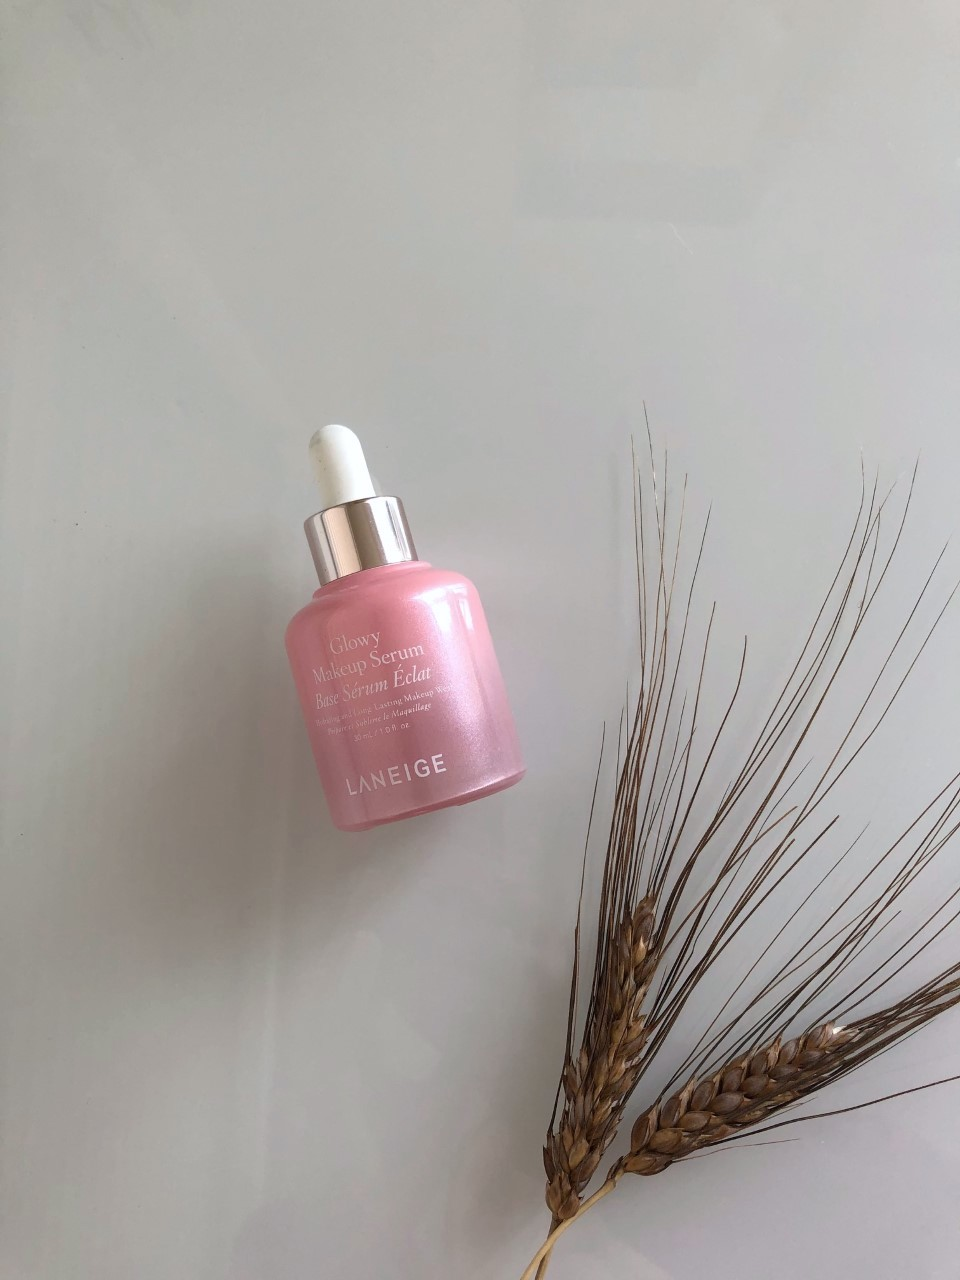 Laneige Glowy Makeup Serum: A quick review